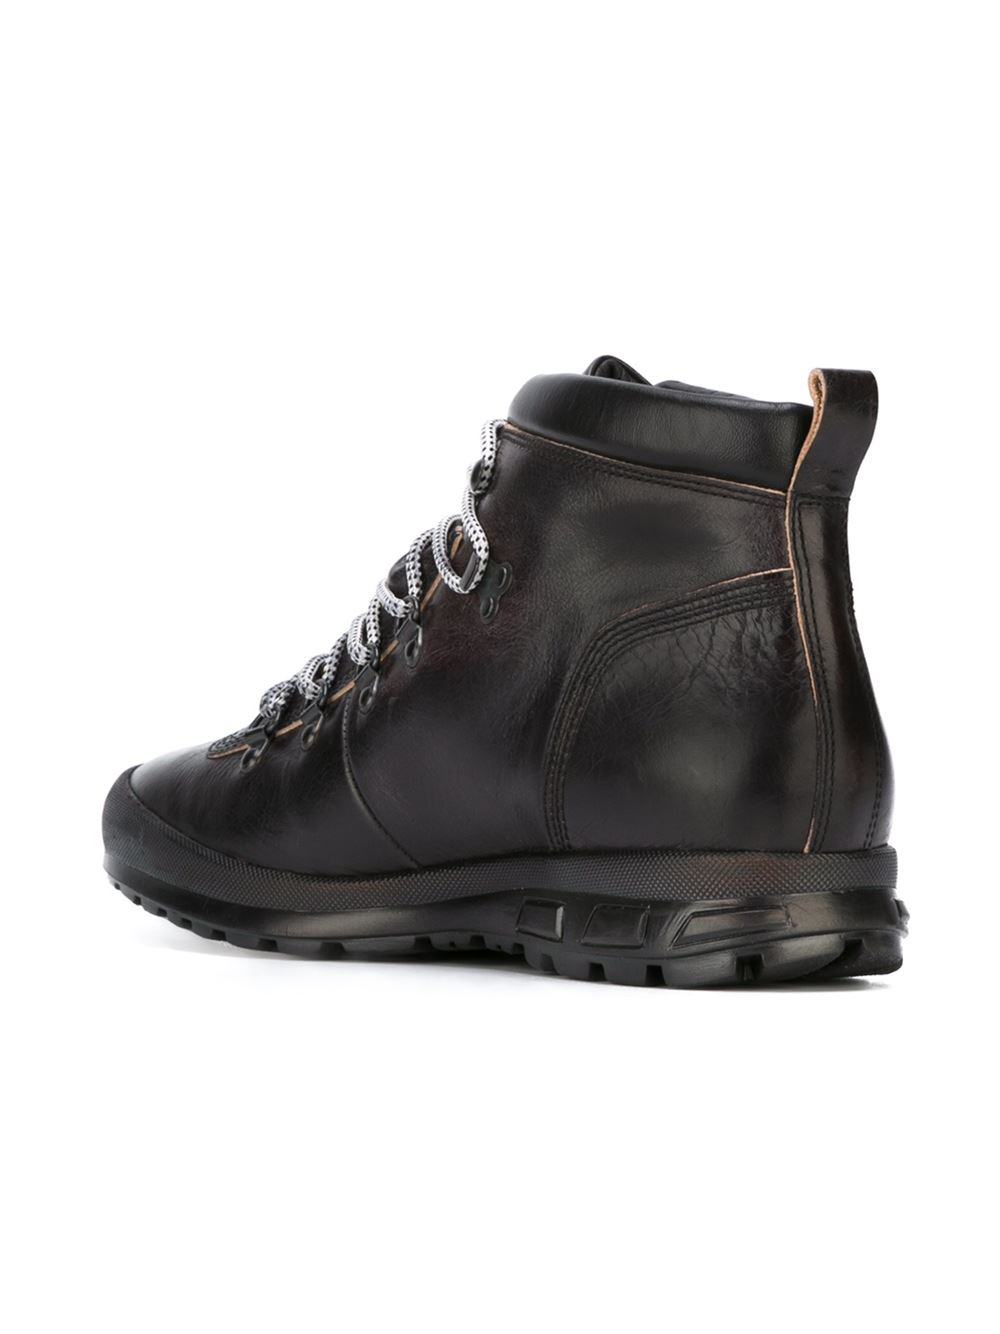 Lyst Emporio Armani Hiking Ankle Boots In Black For Men